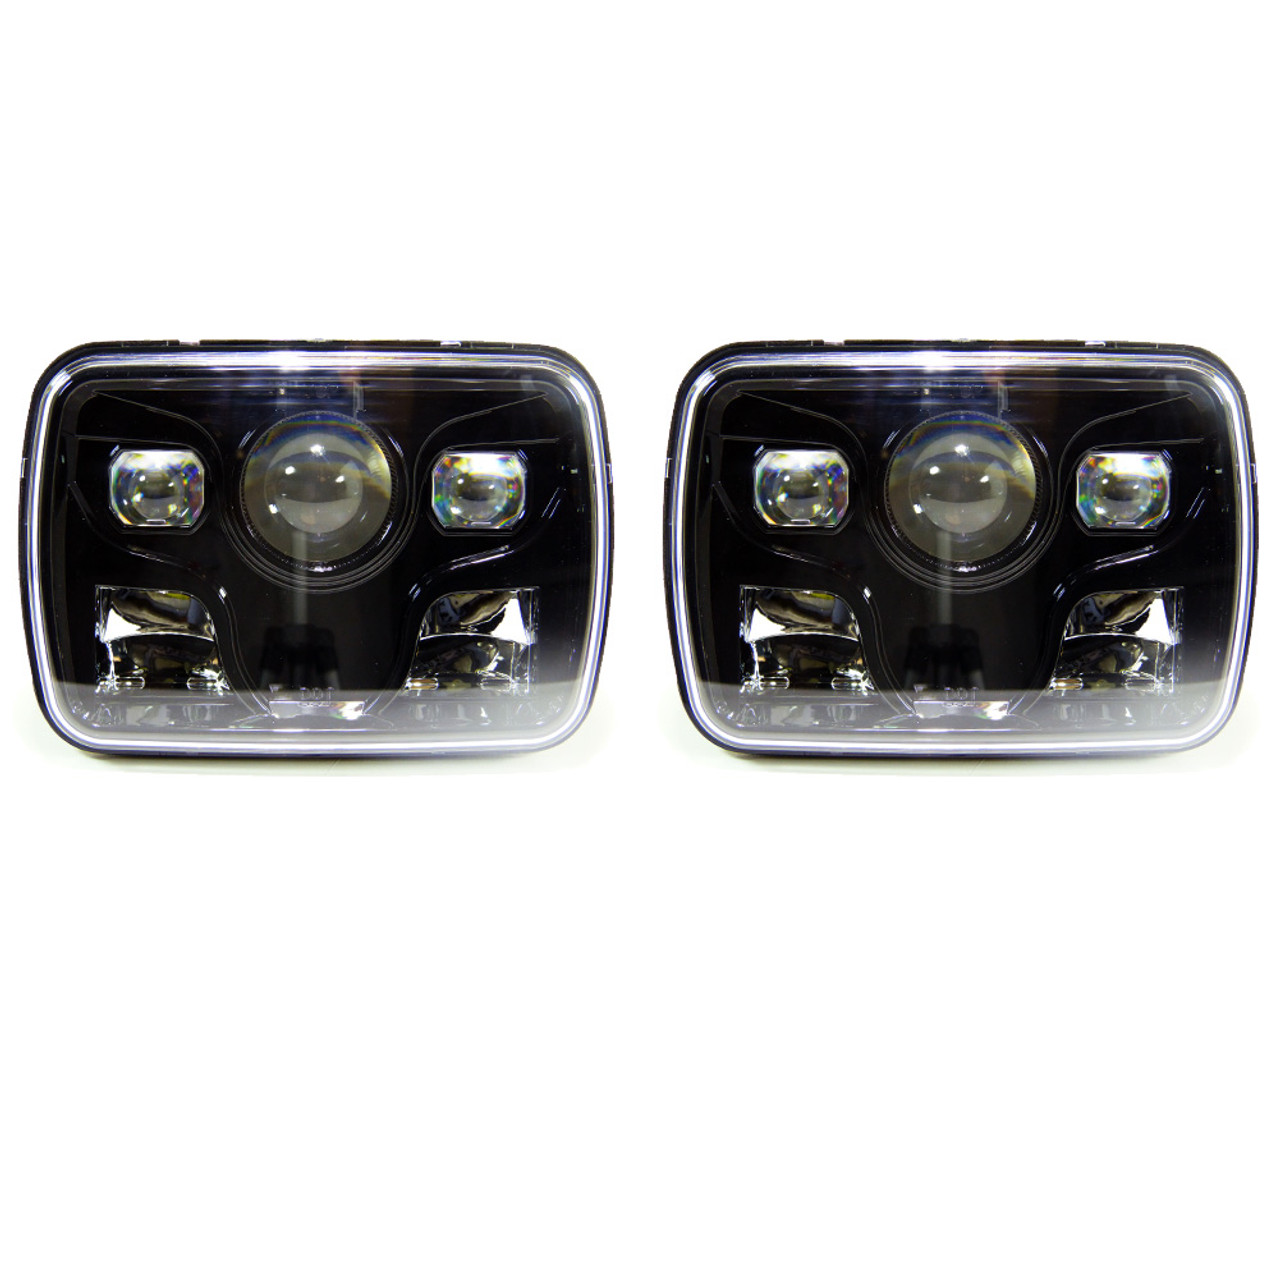 Auto parts headlights 7x6 inch square genssi genssi 76 h6054 200mm led projector headlights dot black set sciox Images